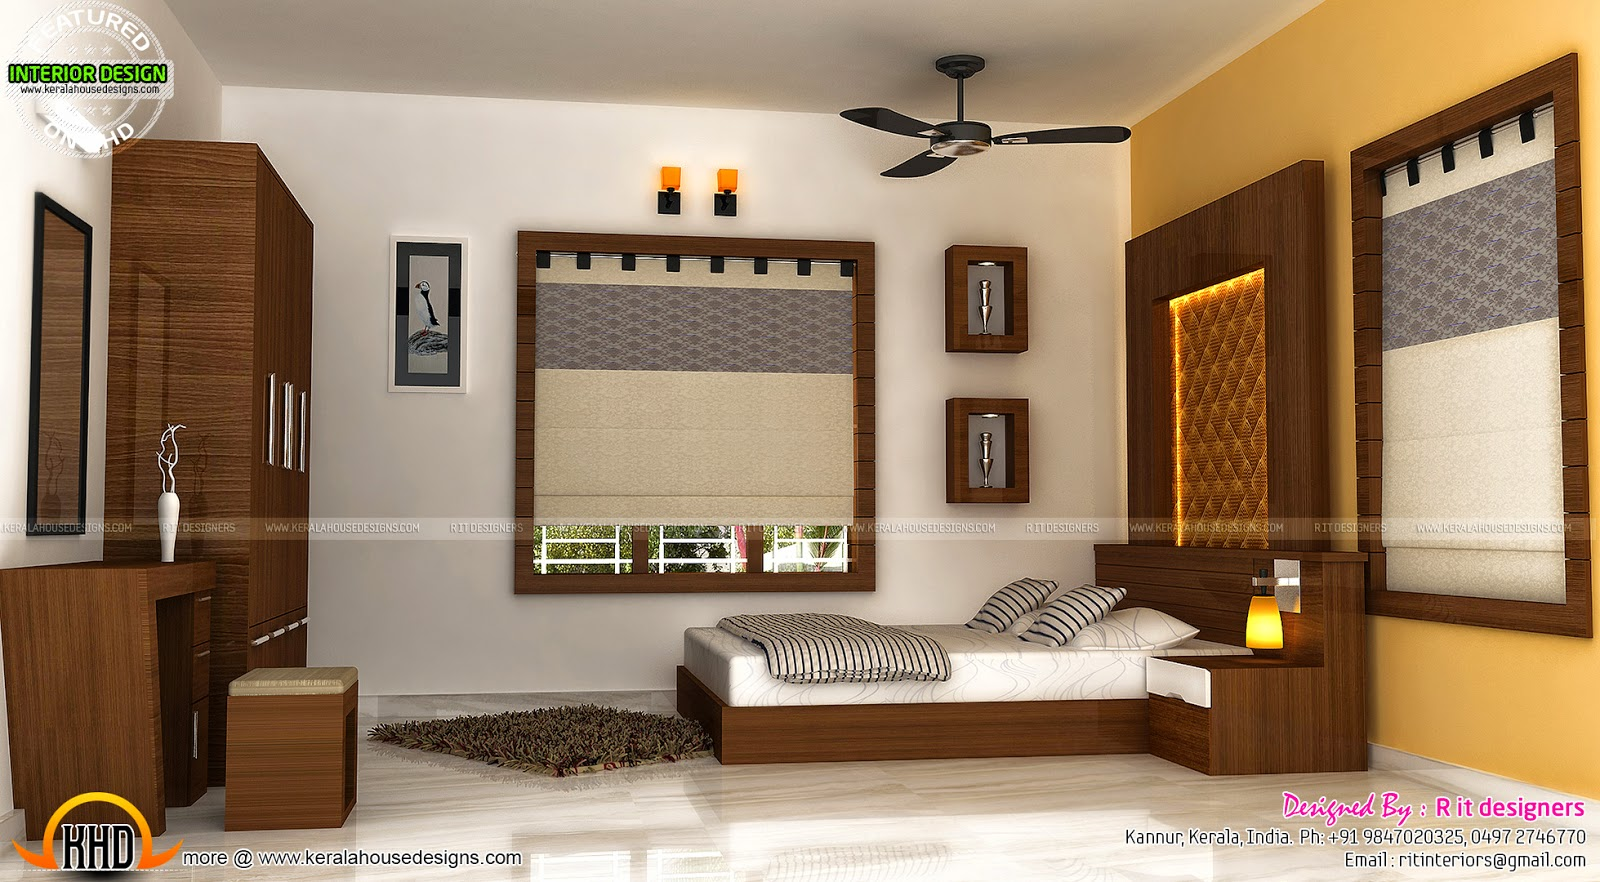 Staircase bedroom dining interiors kerala home design House model interior design